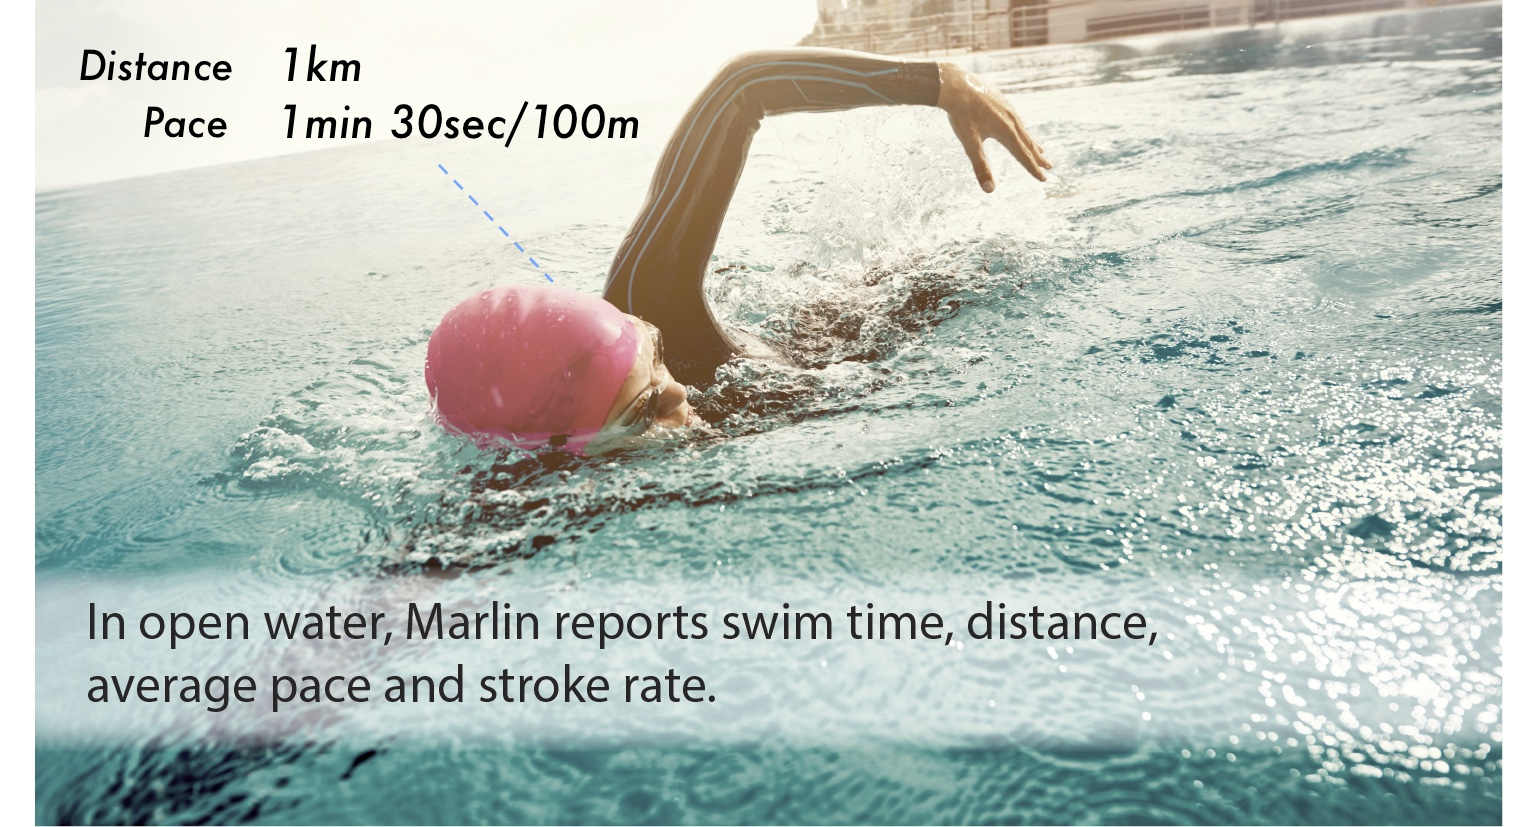 In open water, Marlin reports swim time, distance, average pace and stroke rate.